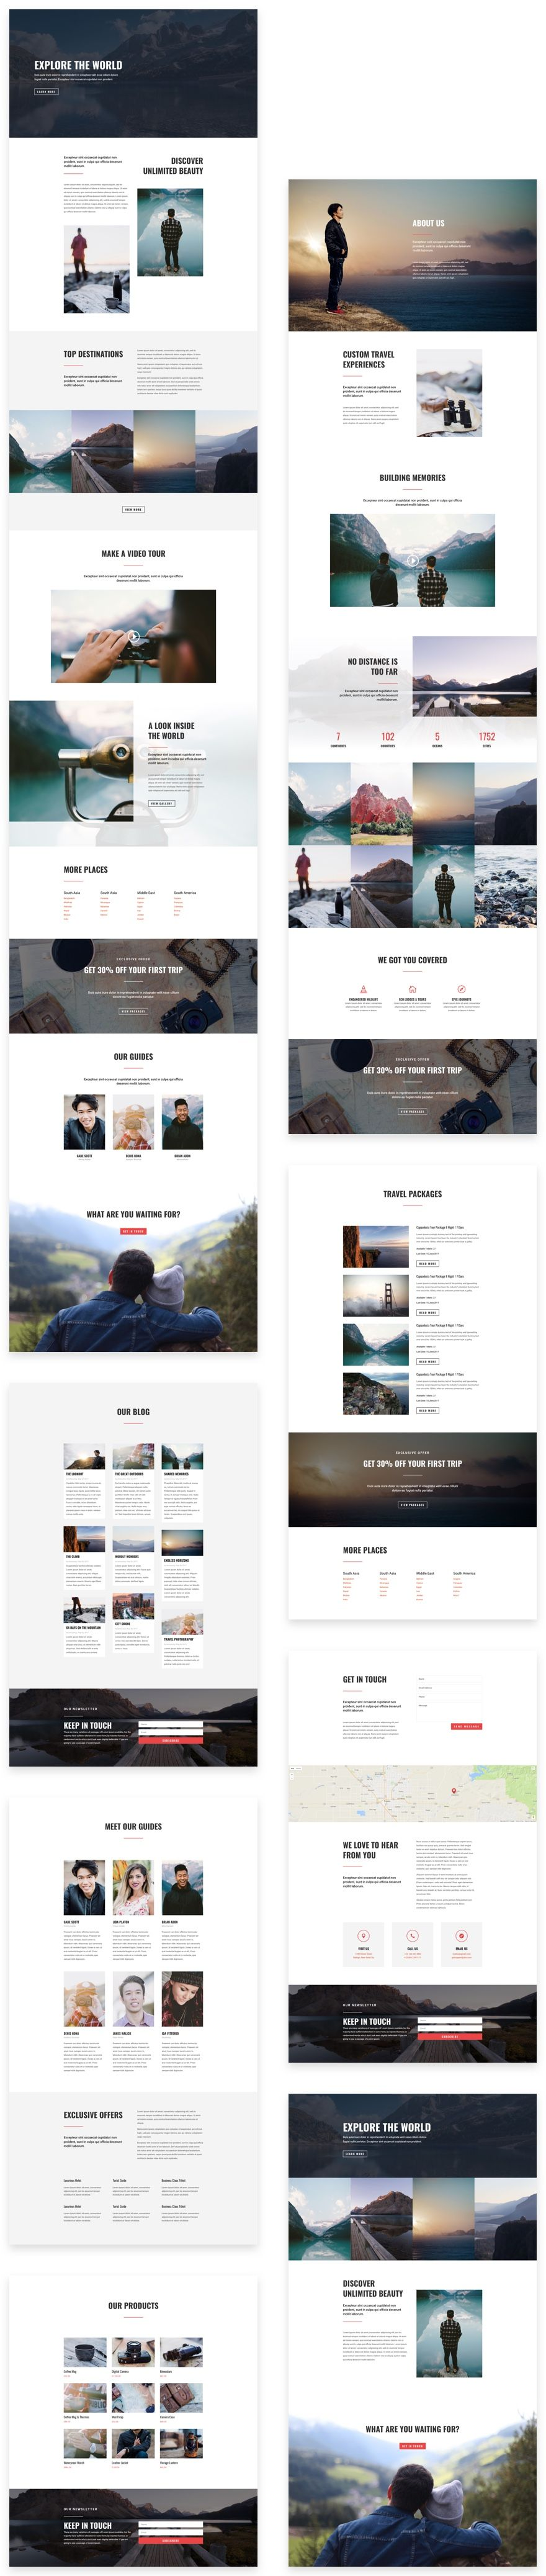 A Complete Set of Divi Layouts for a Stunning Small Business/Travel Website for $0